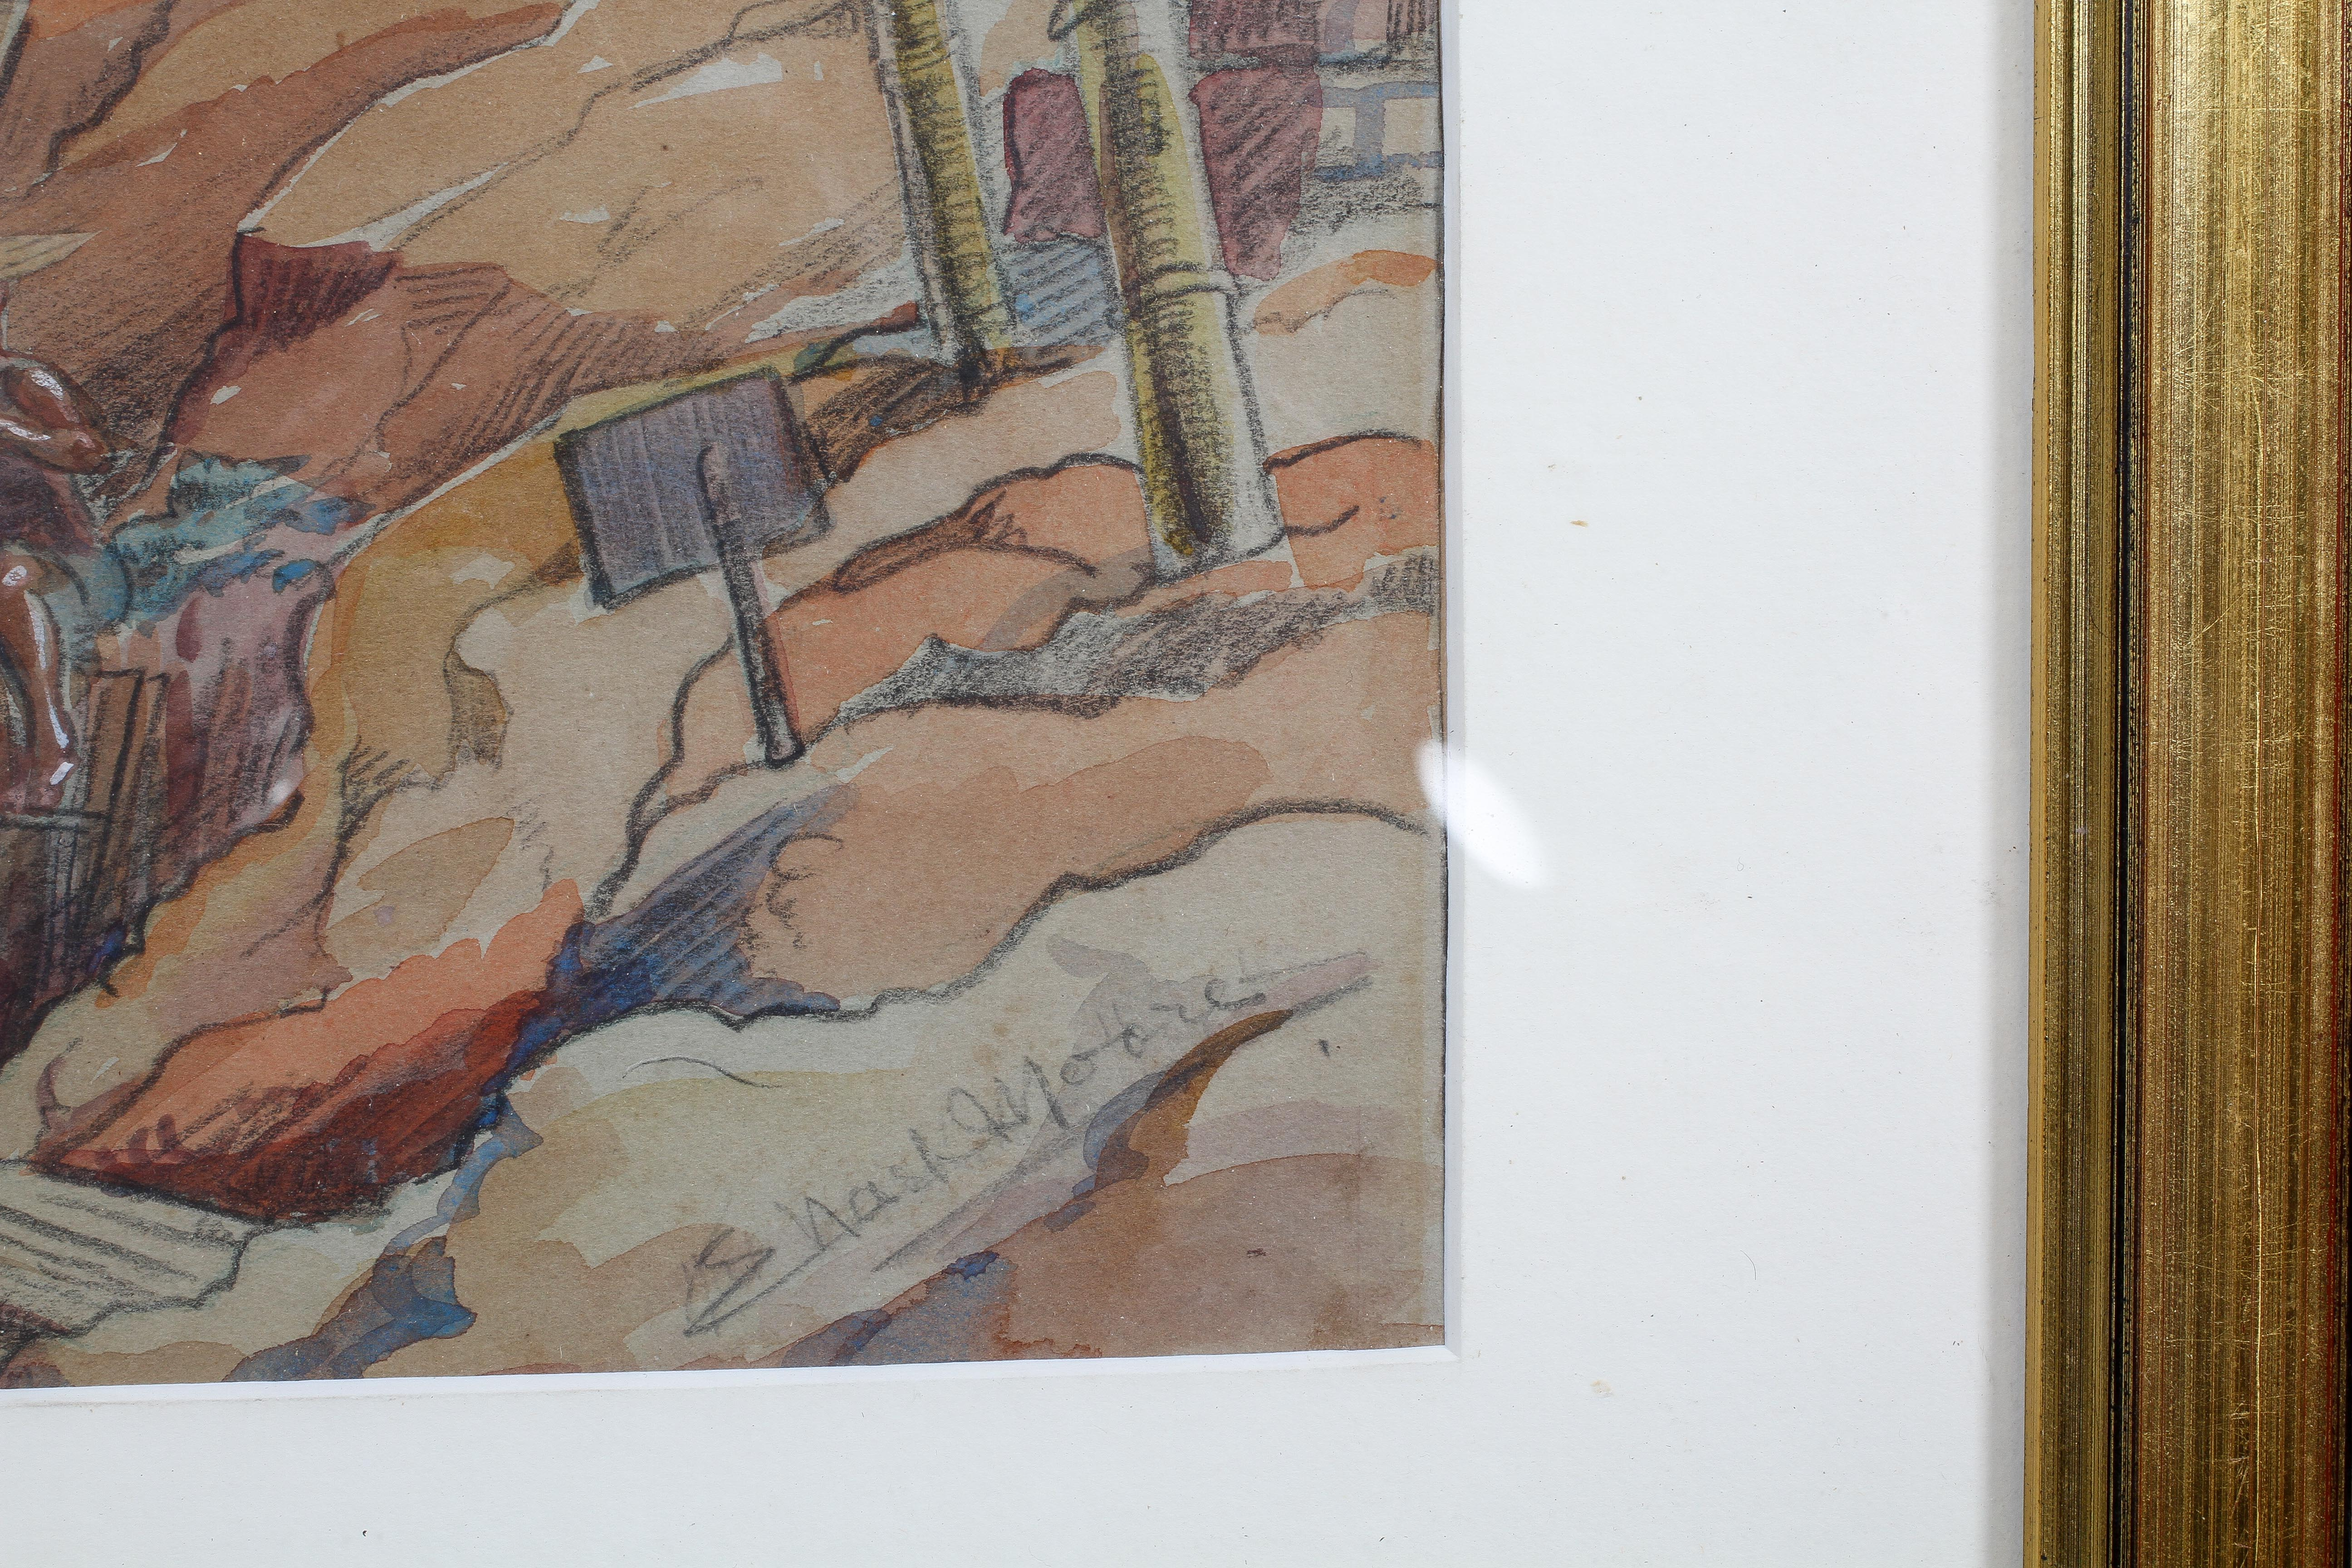 E Nash Moore, pencil and watercolour, Mountainous construction scene, signed lower right, - Image 3 of 4